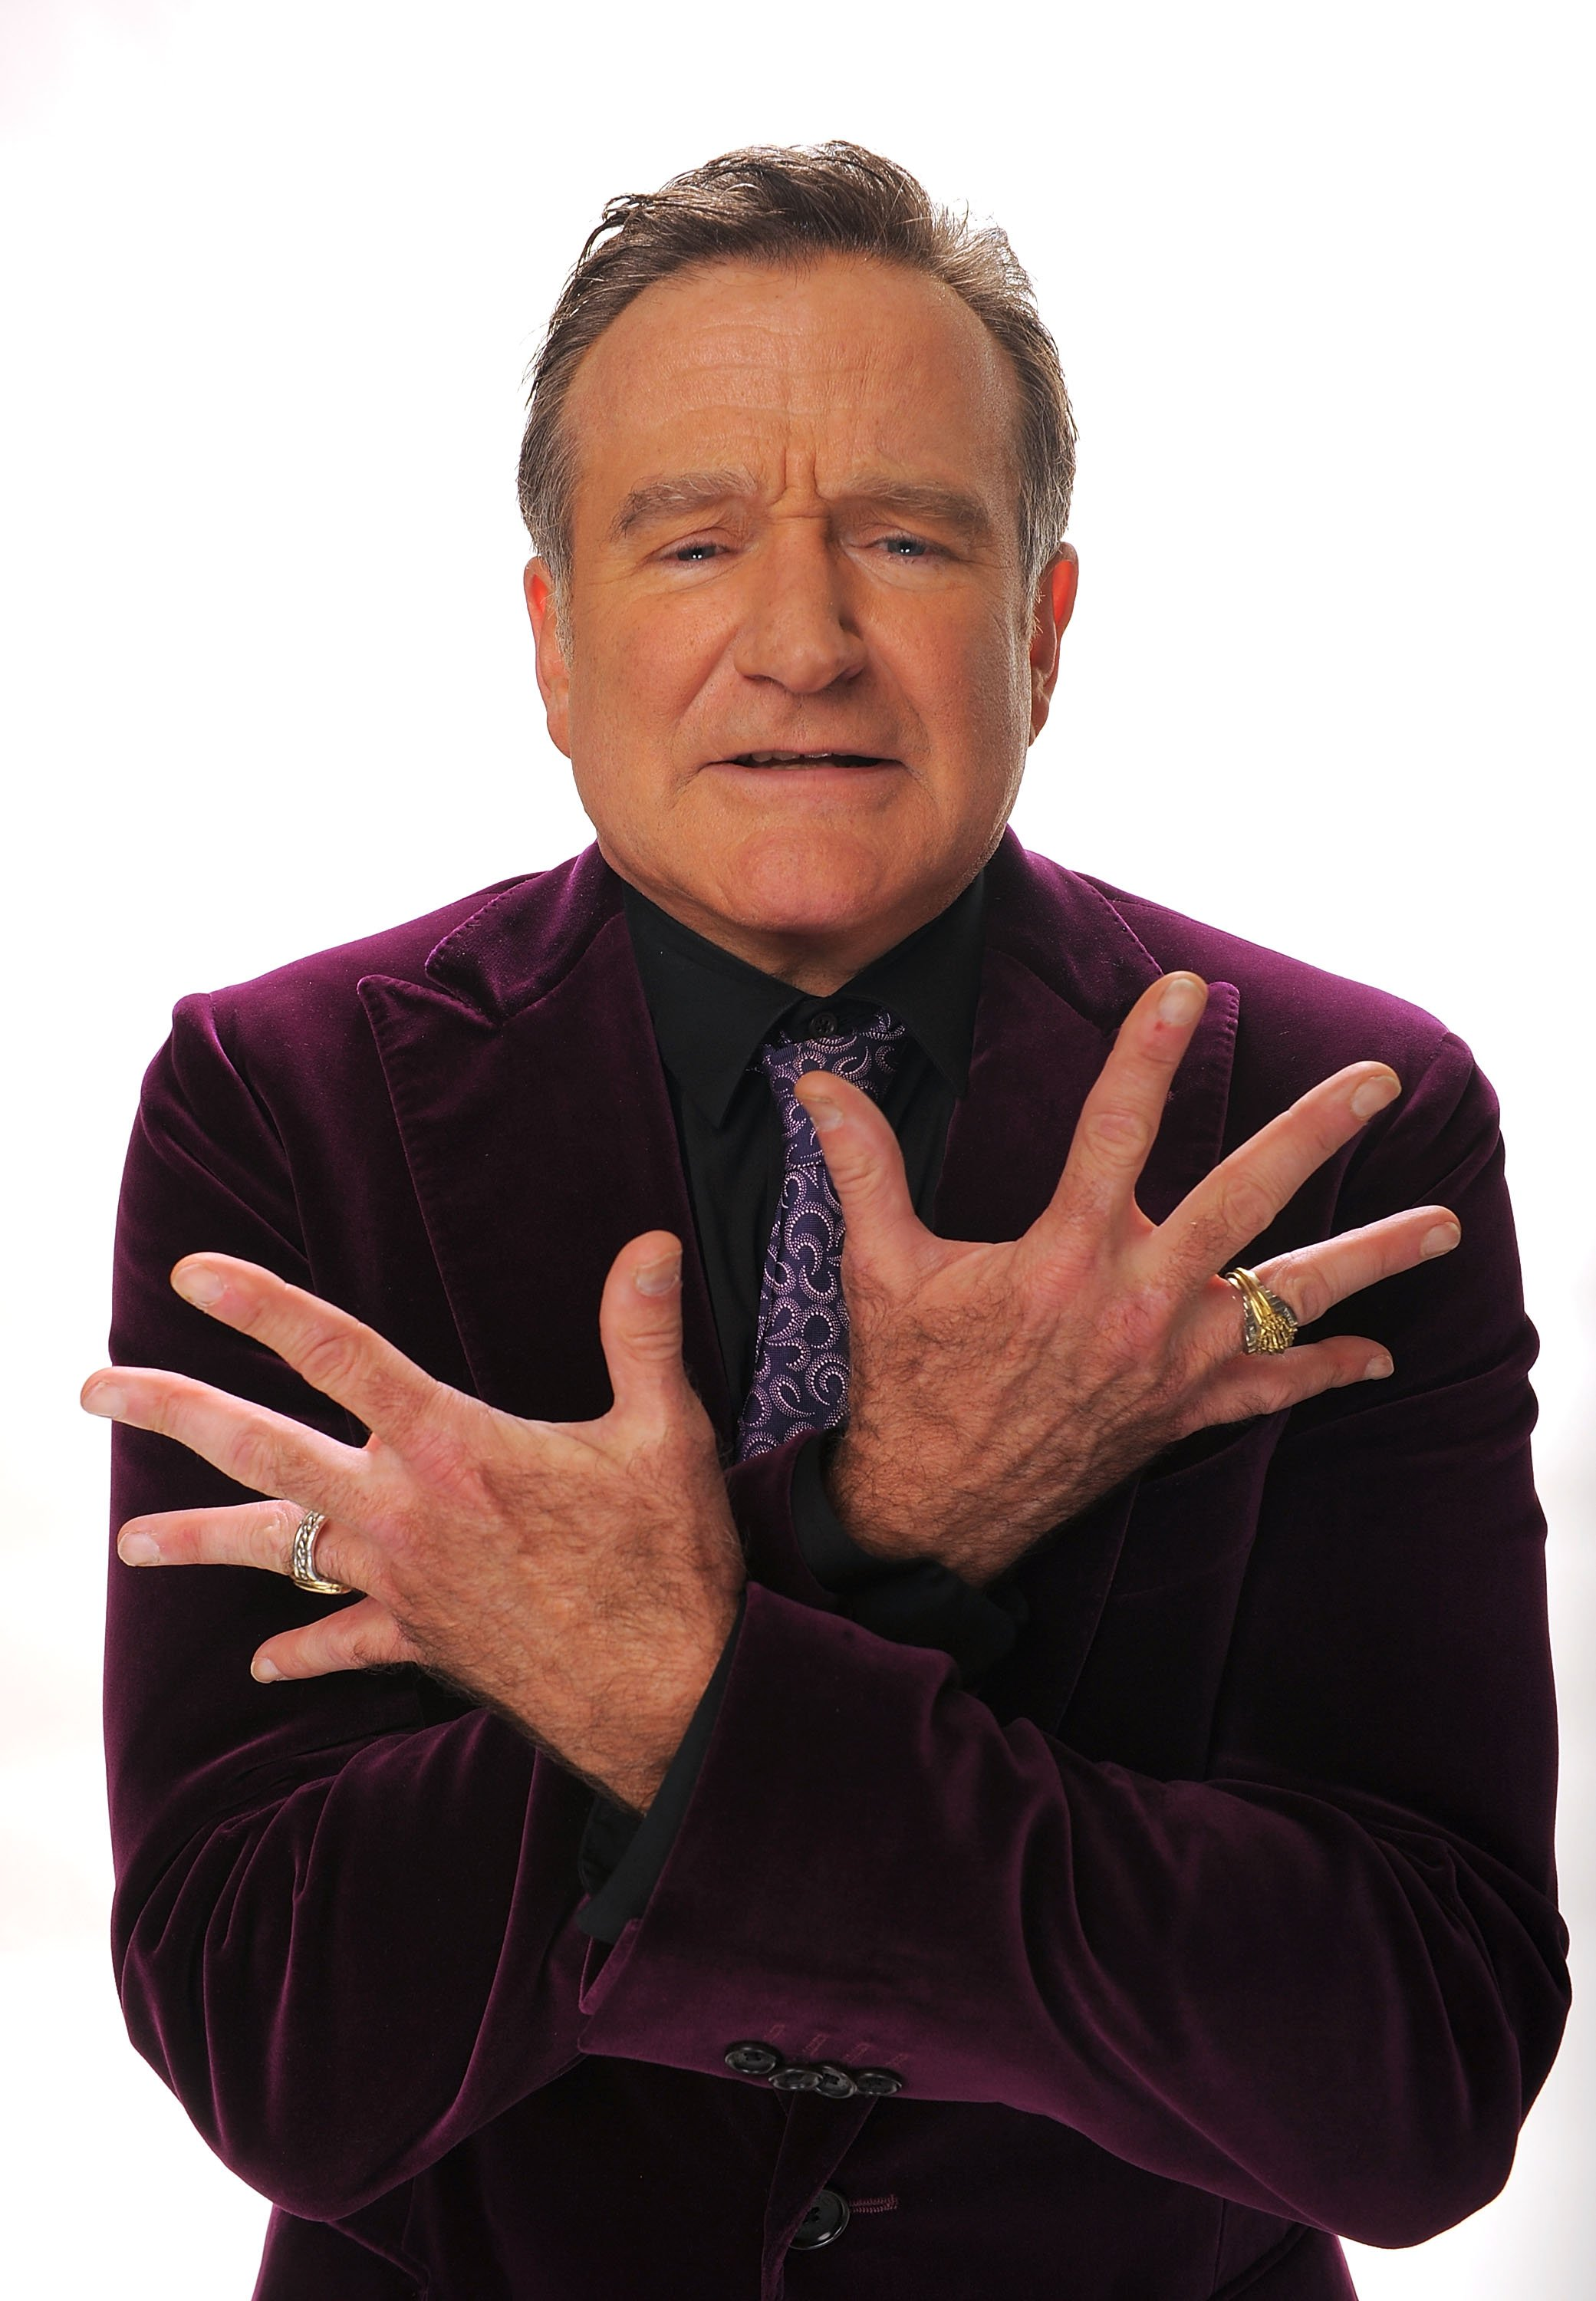 Image Credits: Getty Images / Michael Caulfield | Actor Robin Williams poses for a portrait during the 35th Annual People's Choice Awards held at the Shrine Auditorium on January 7, 2009 in Los Angeles, California.